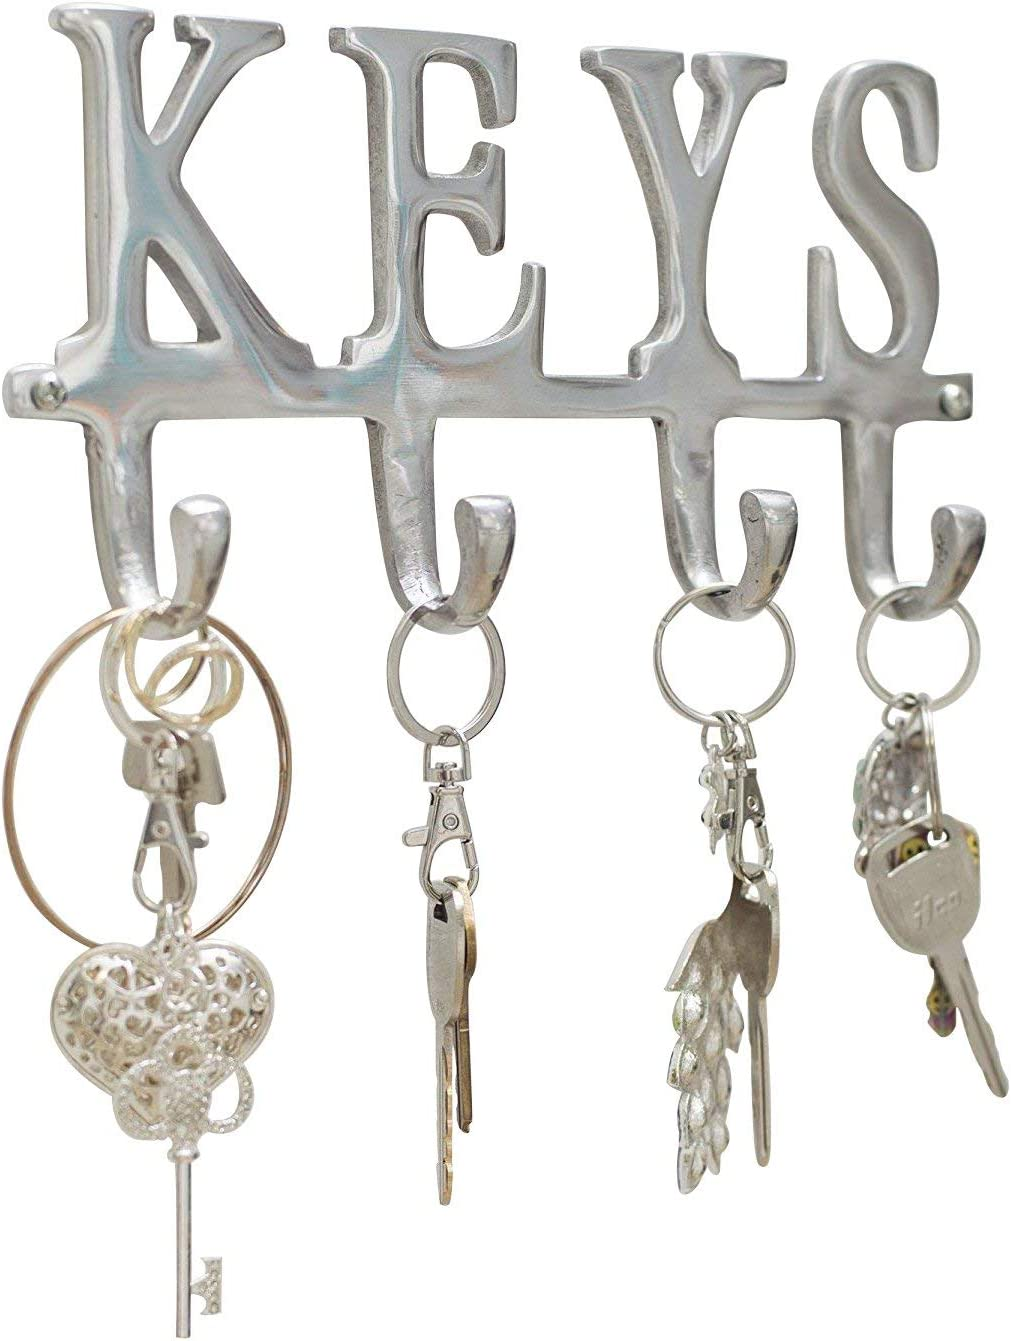 """Comfify Key Holder """"Keys"""" safety Wall Mounted Max 80% OFF – Hold"""